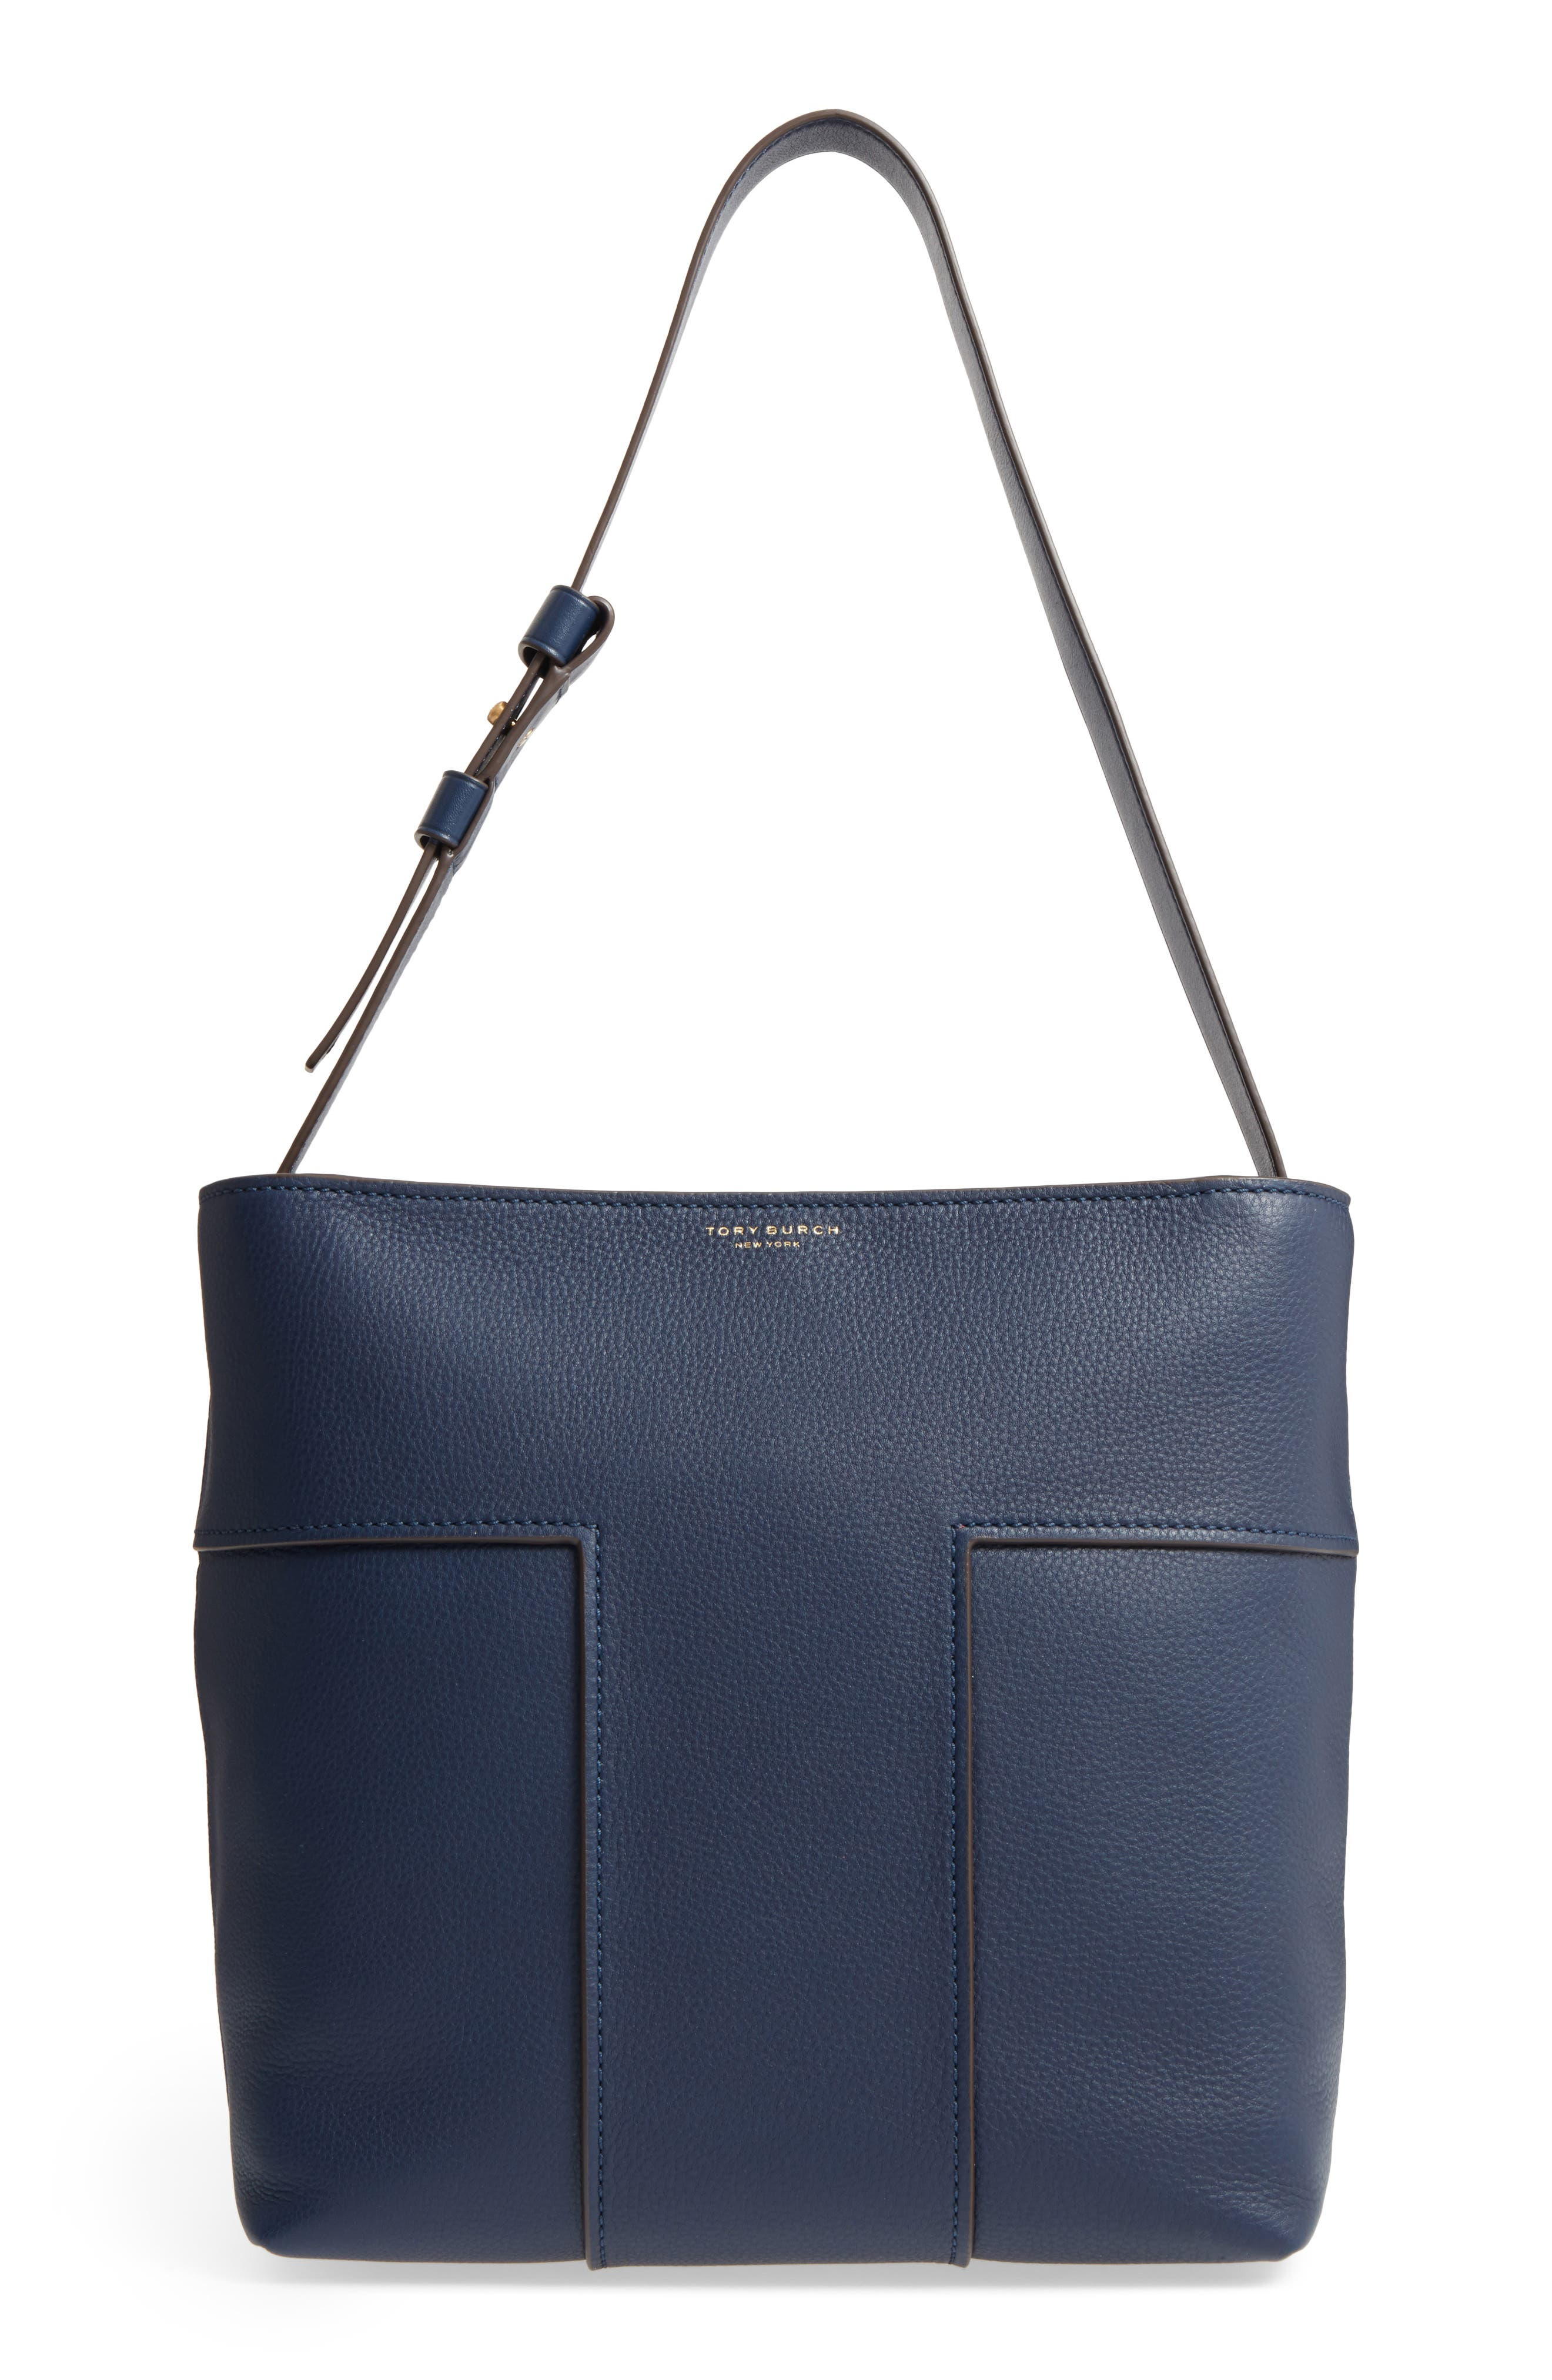 Main Image - Tory Burch Block-T Pebbled Leather Hobo